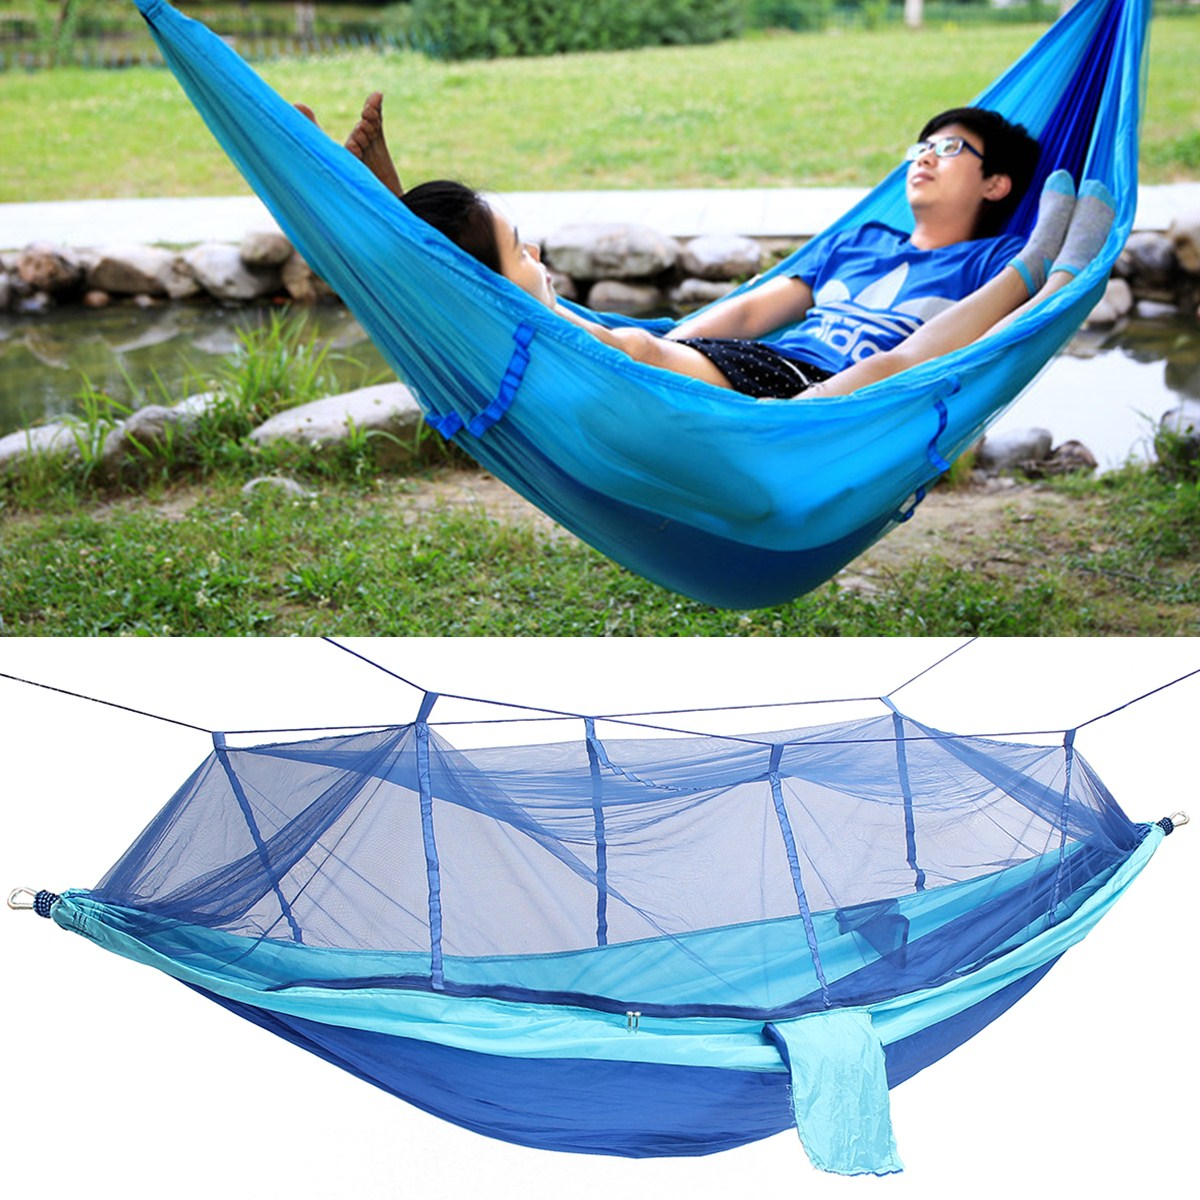 Travel Outdoor Camping Tent Portable Outdoor Camping Hammock Strength Sleeping Hanging Bed with Mosquito Net